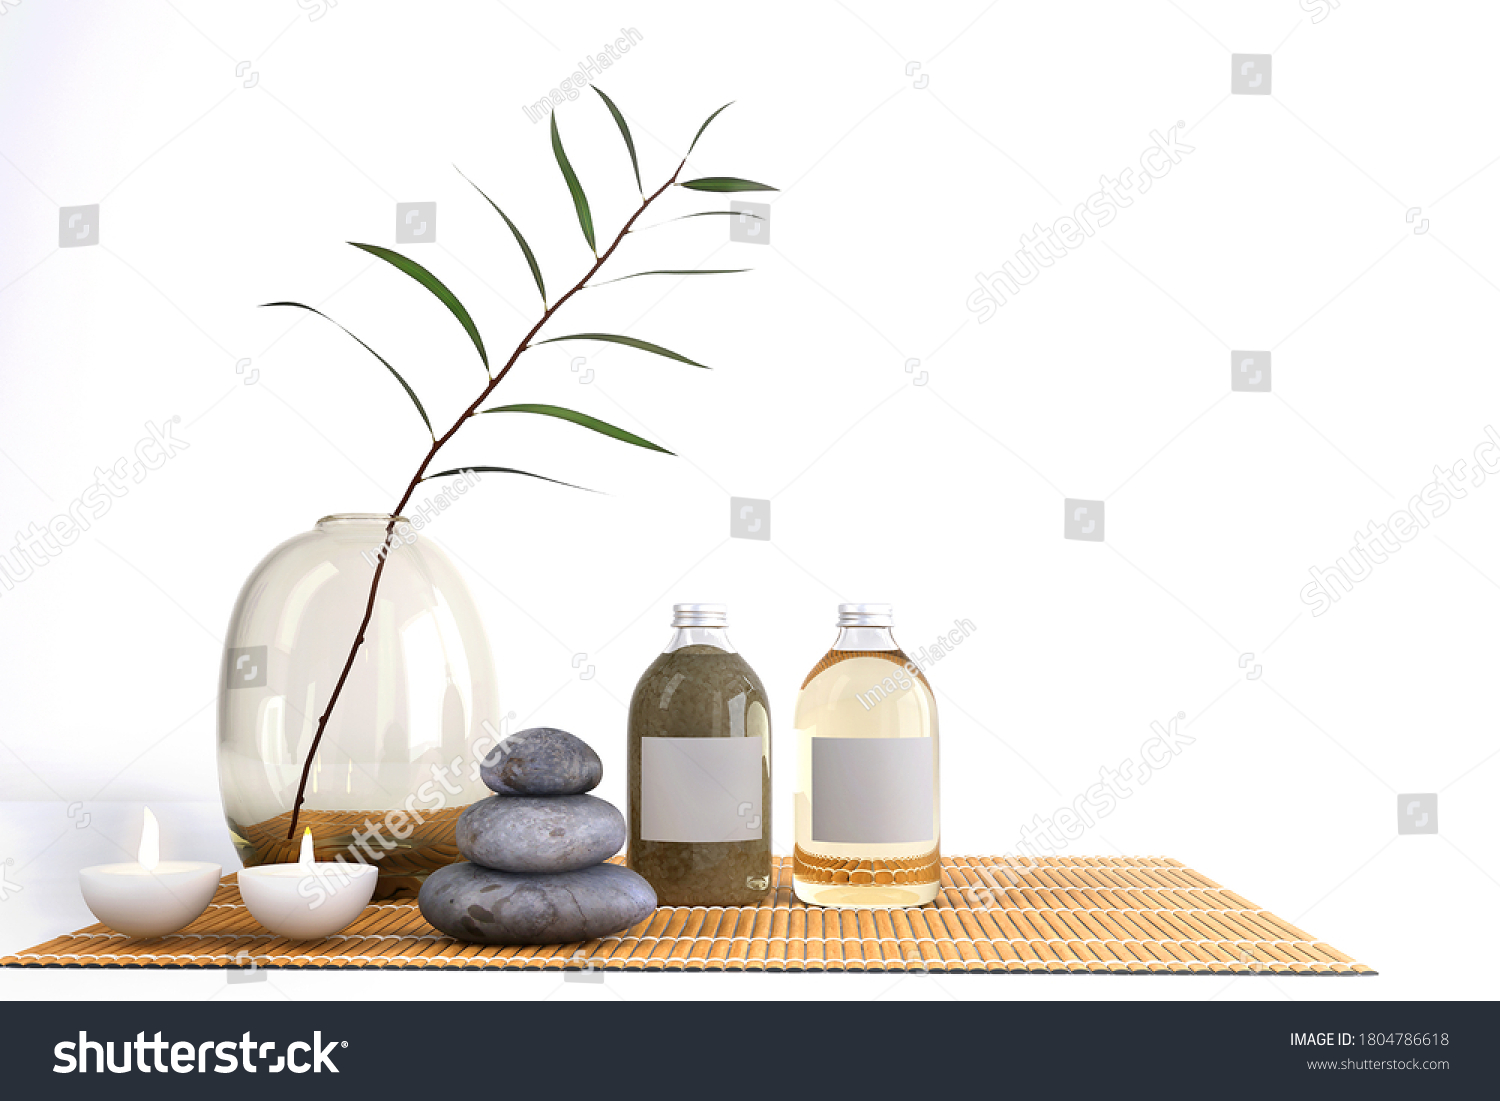 stock-photo-mock-up-of-spa-products-with